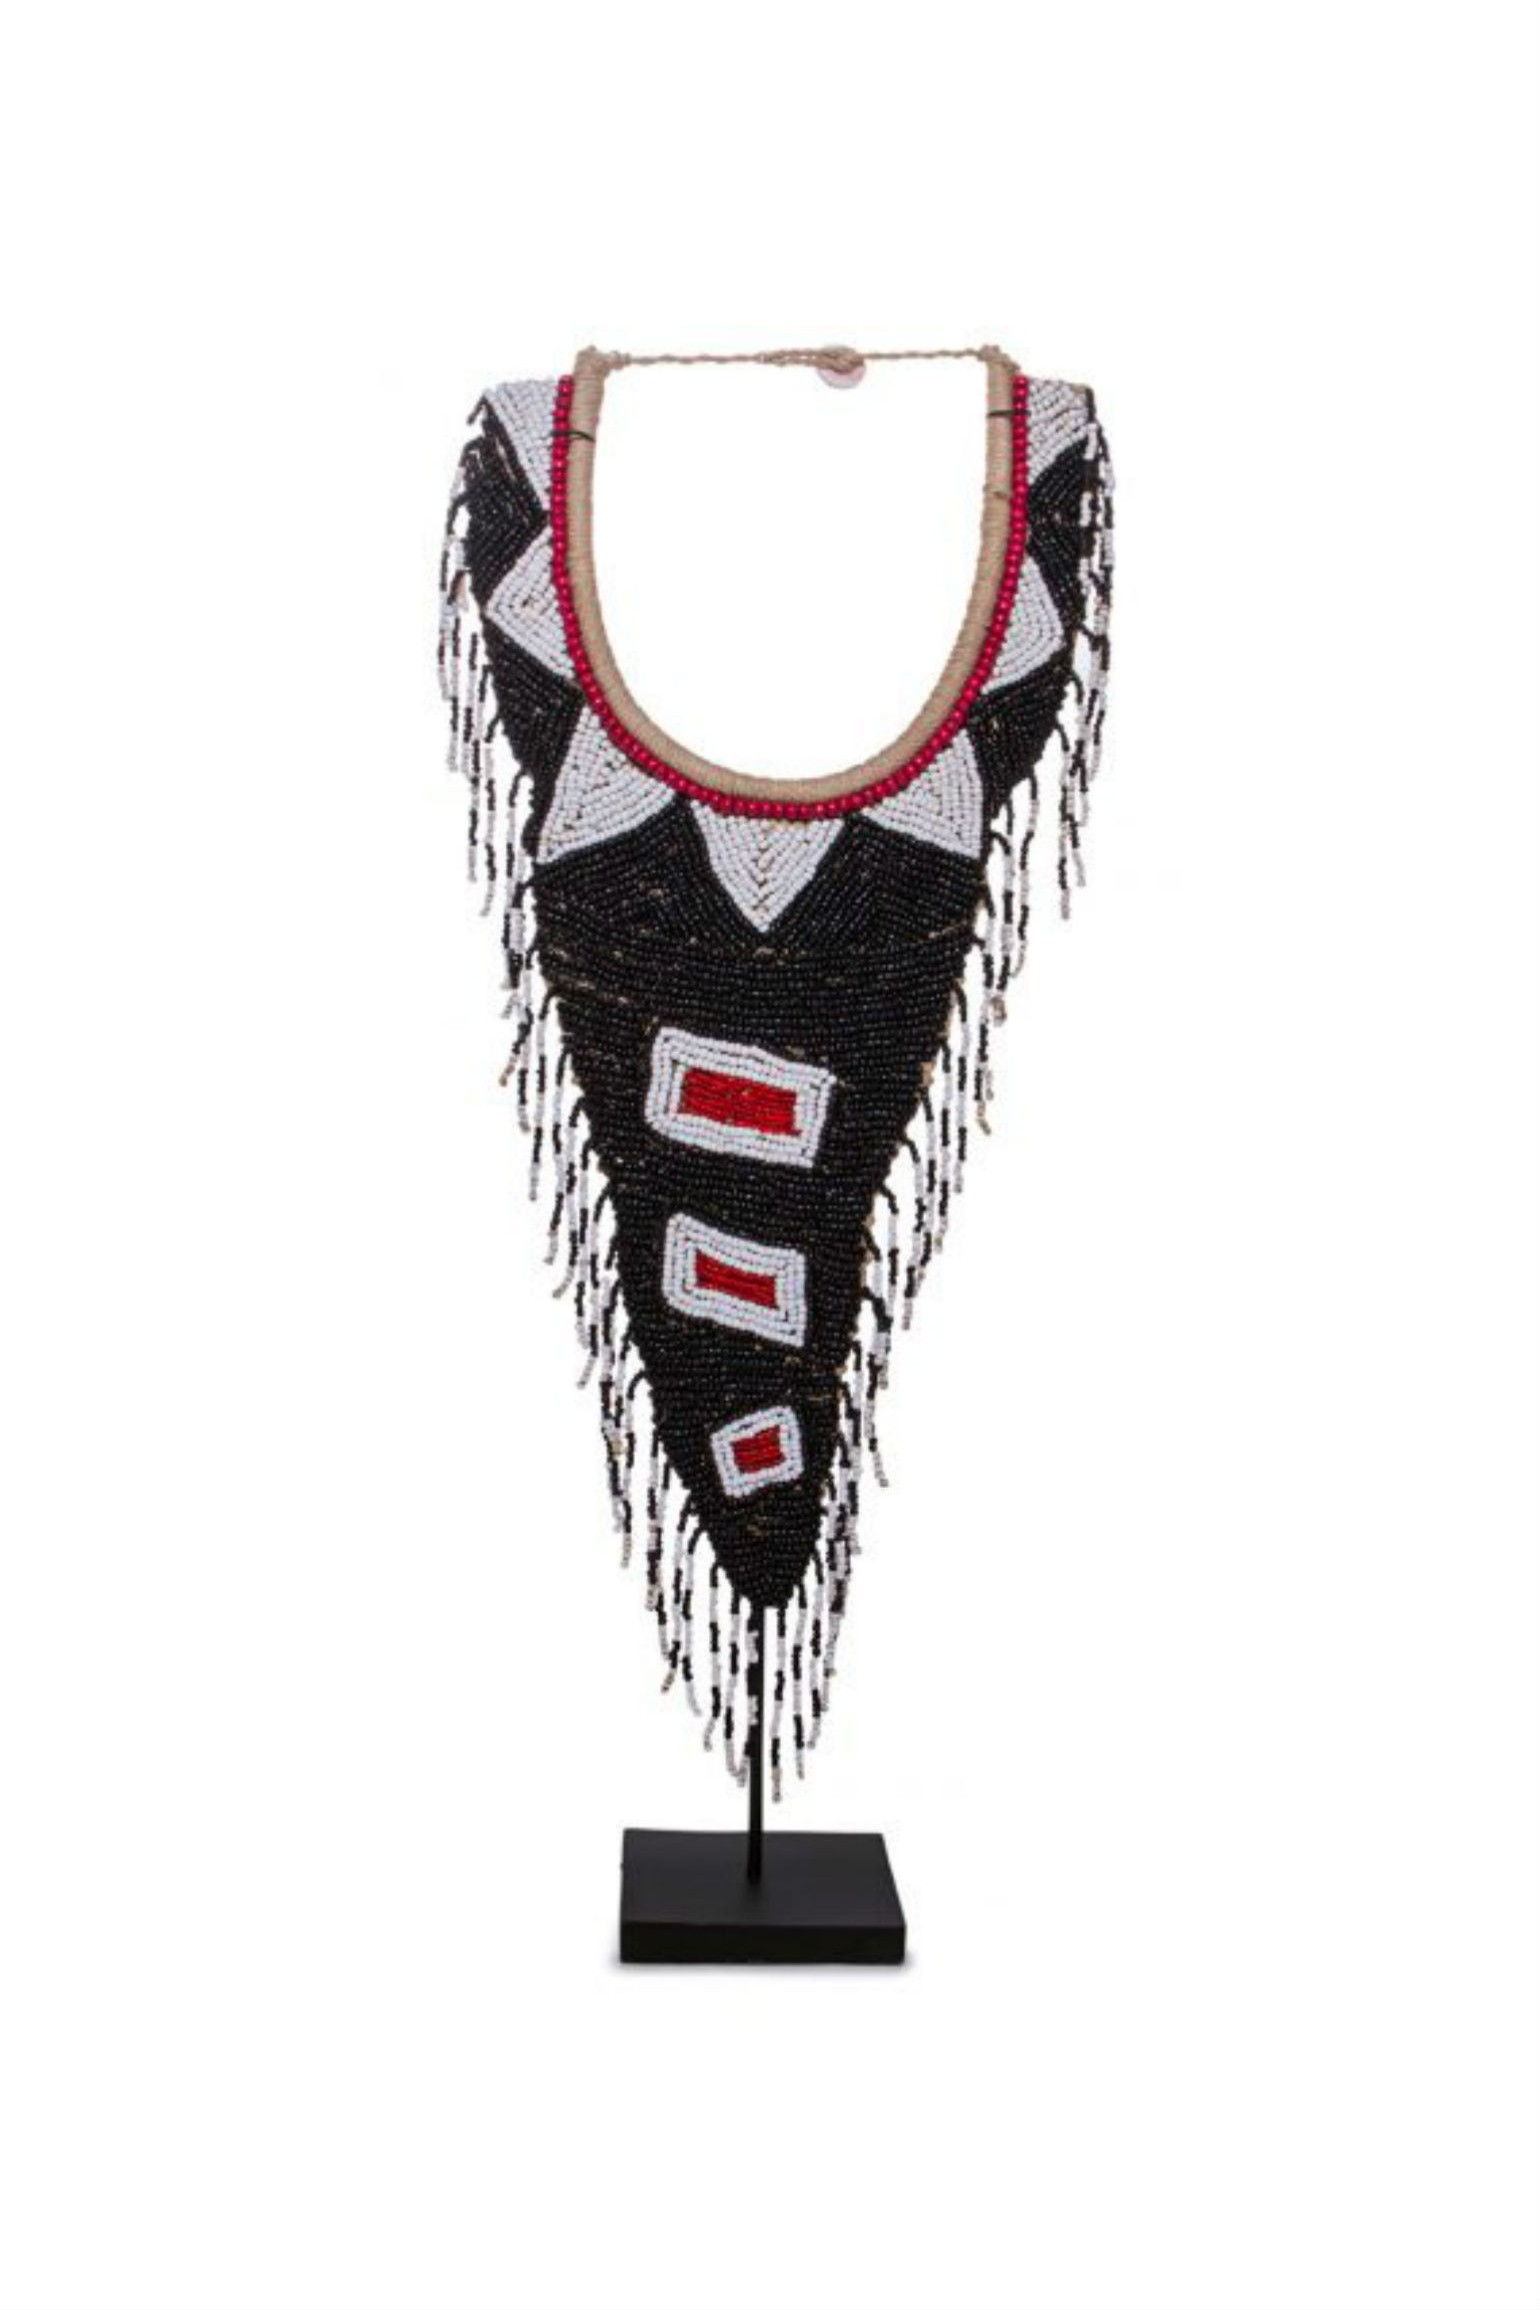 Beaded Necklace on Stand